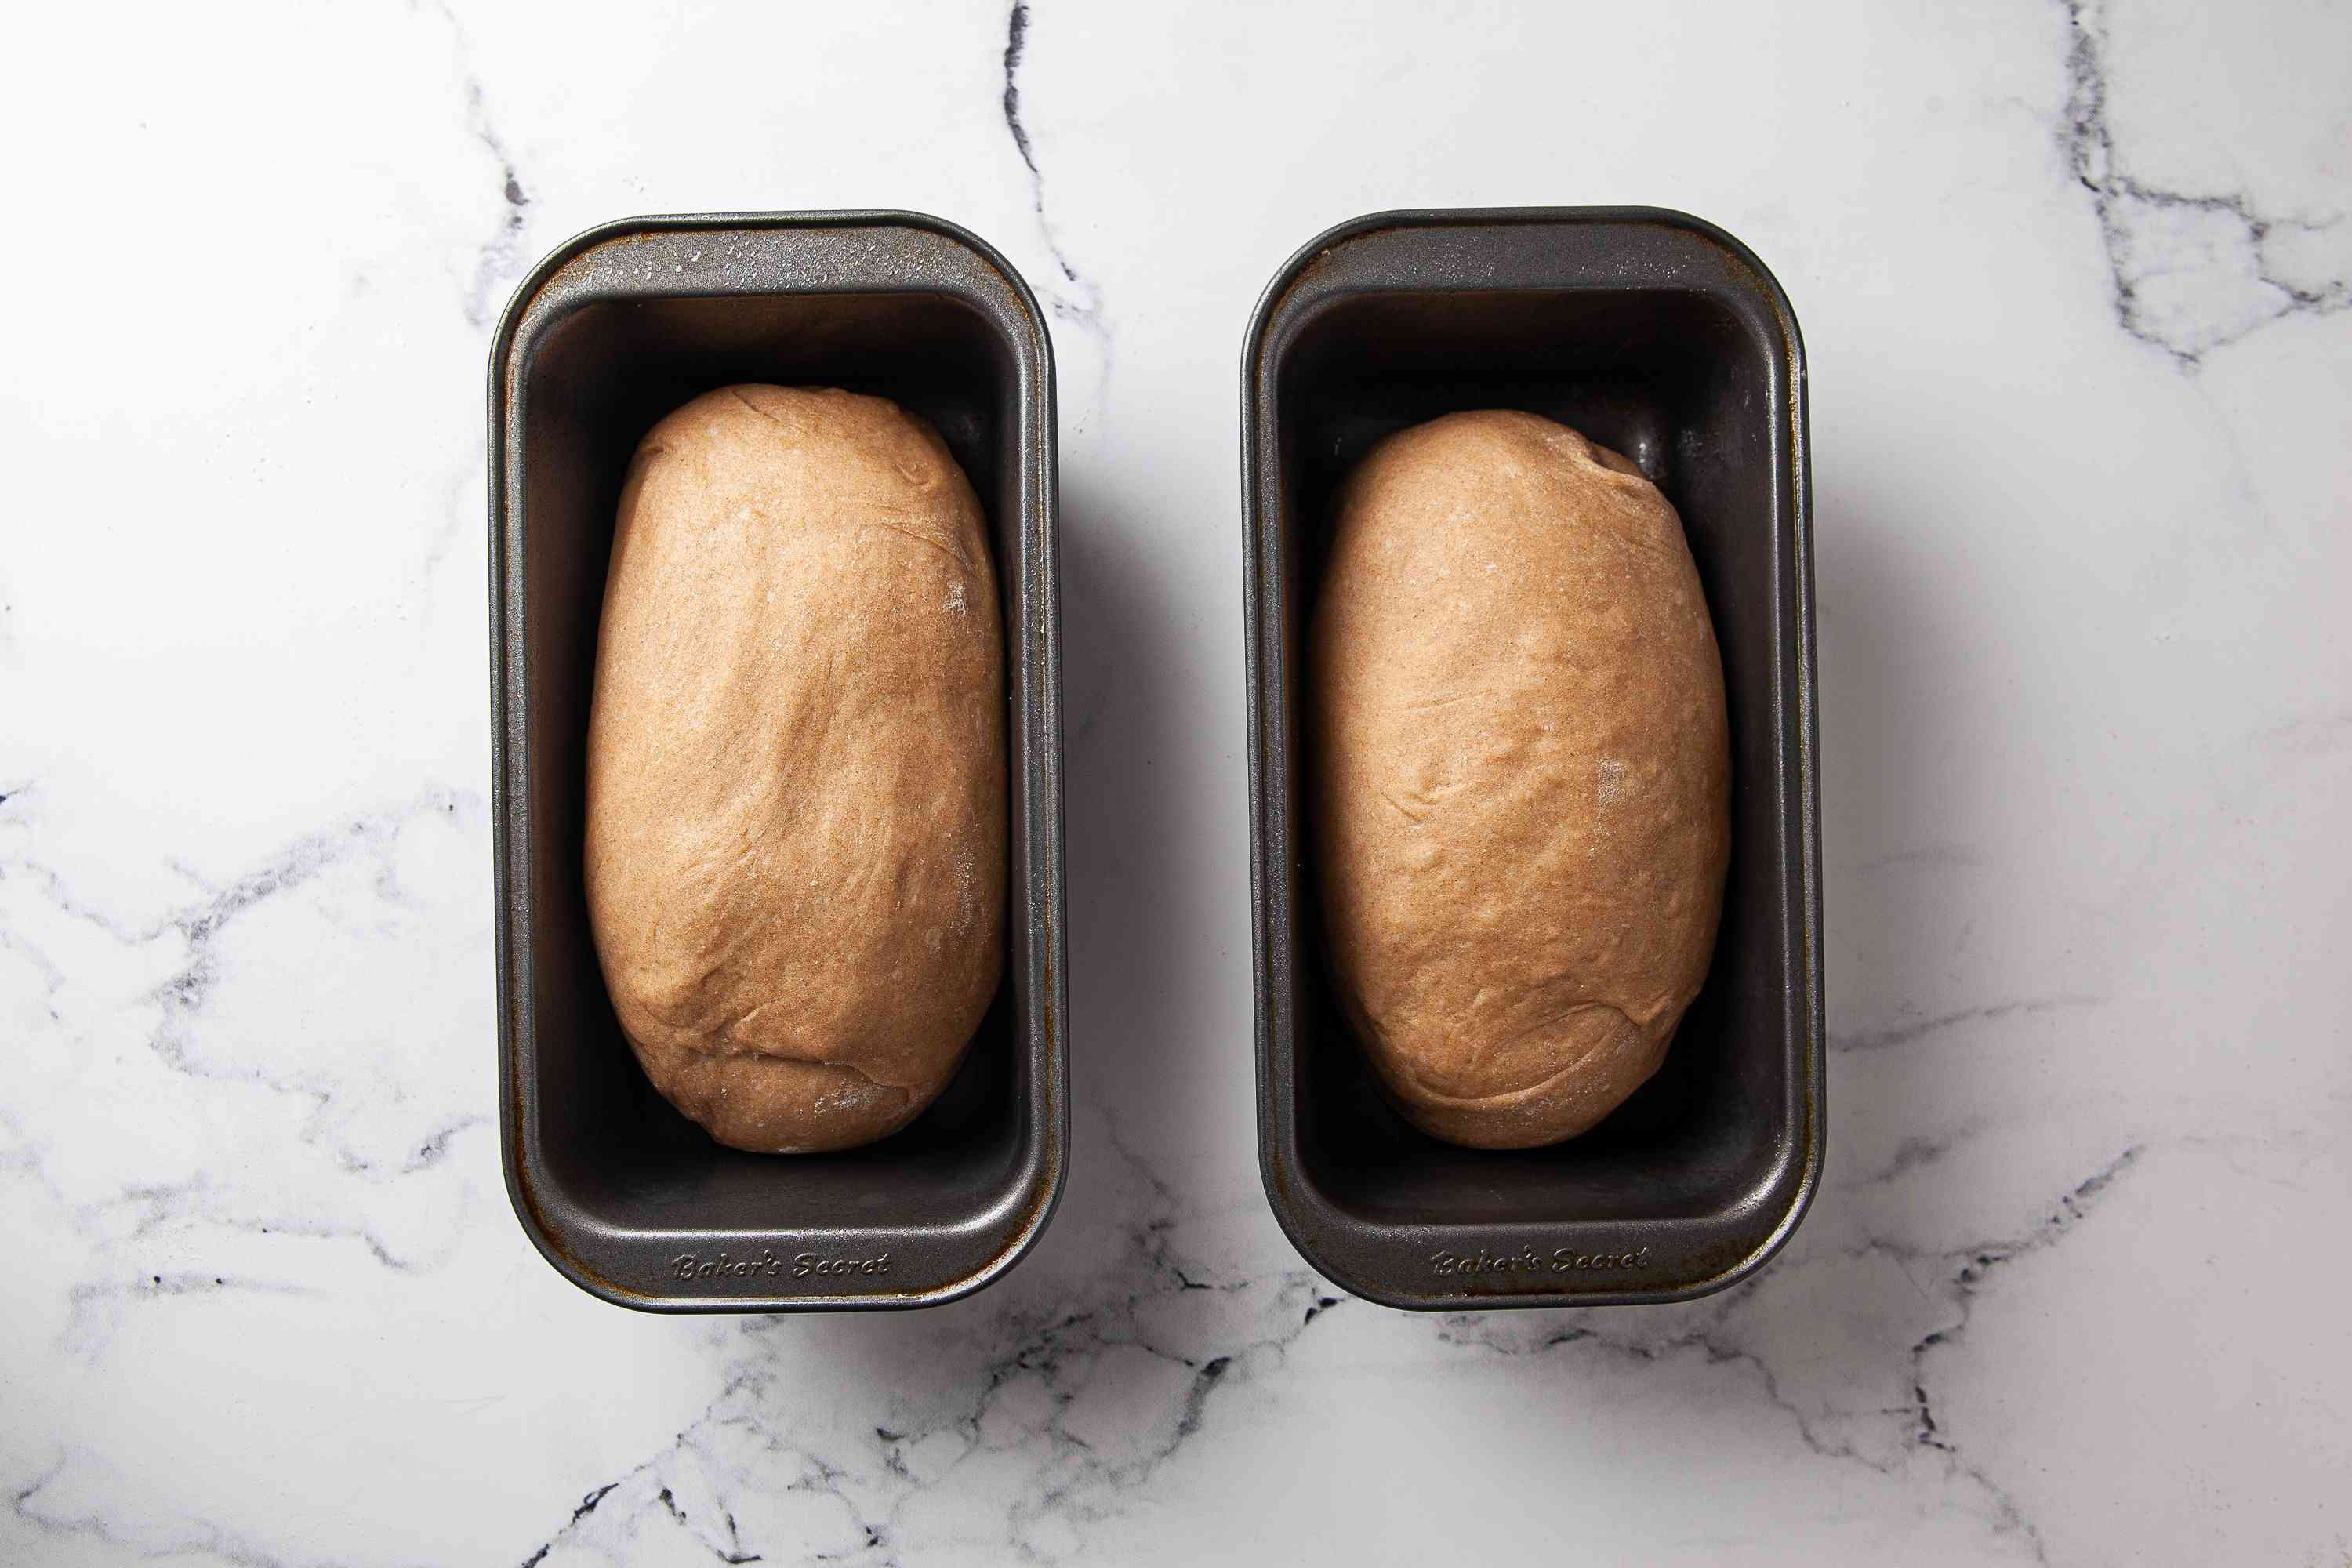 Form loaves